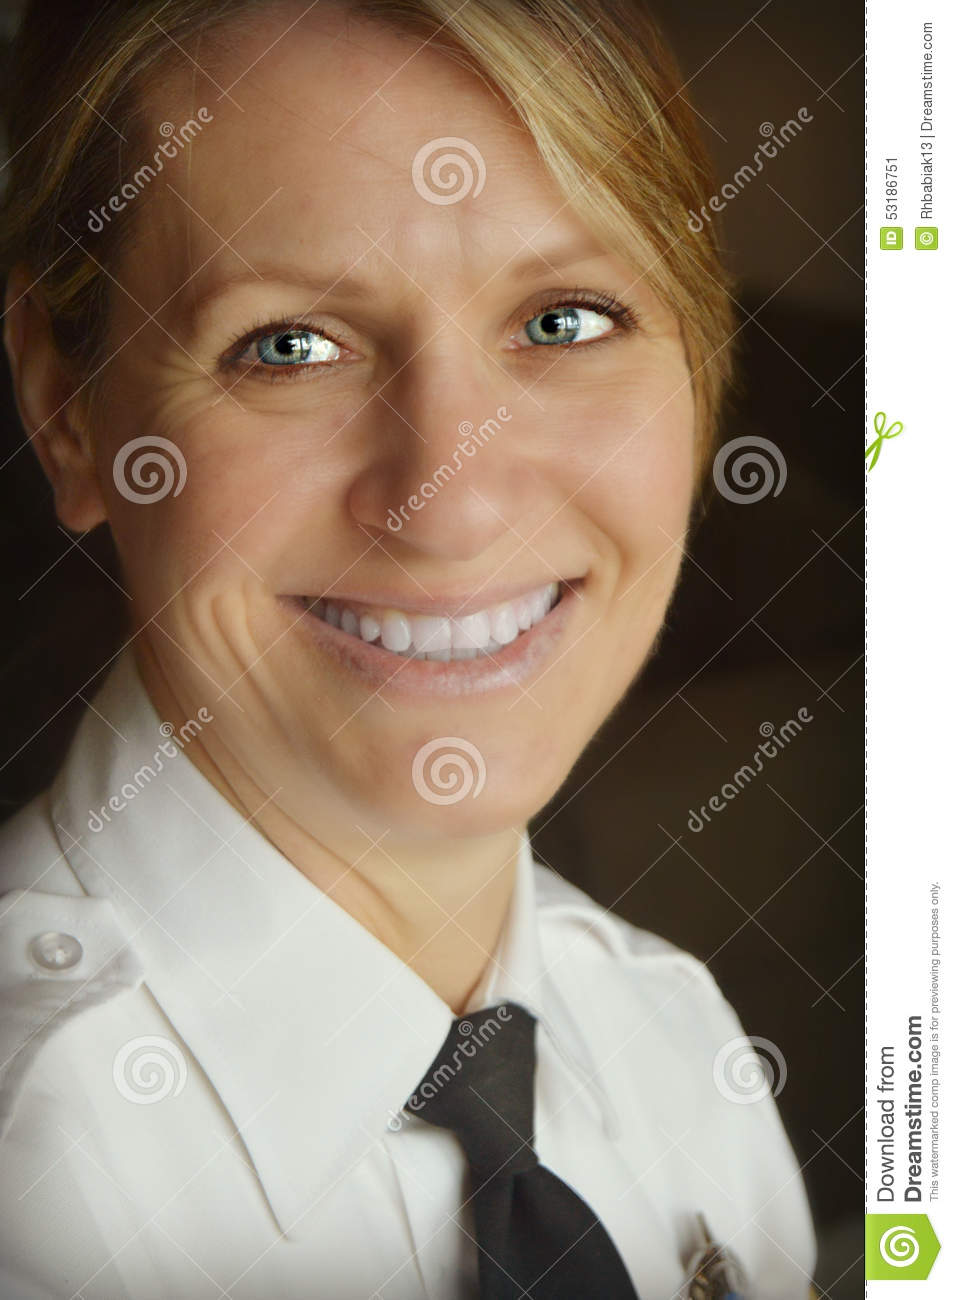 Woman Police Officer Stock Photo Image 53186751